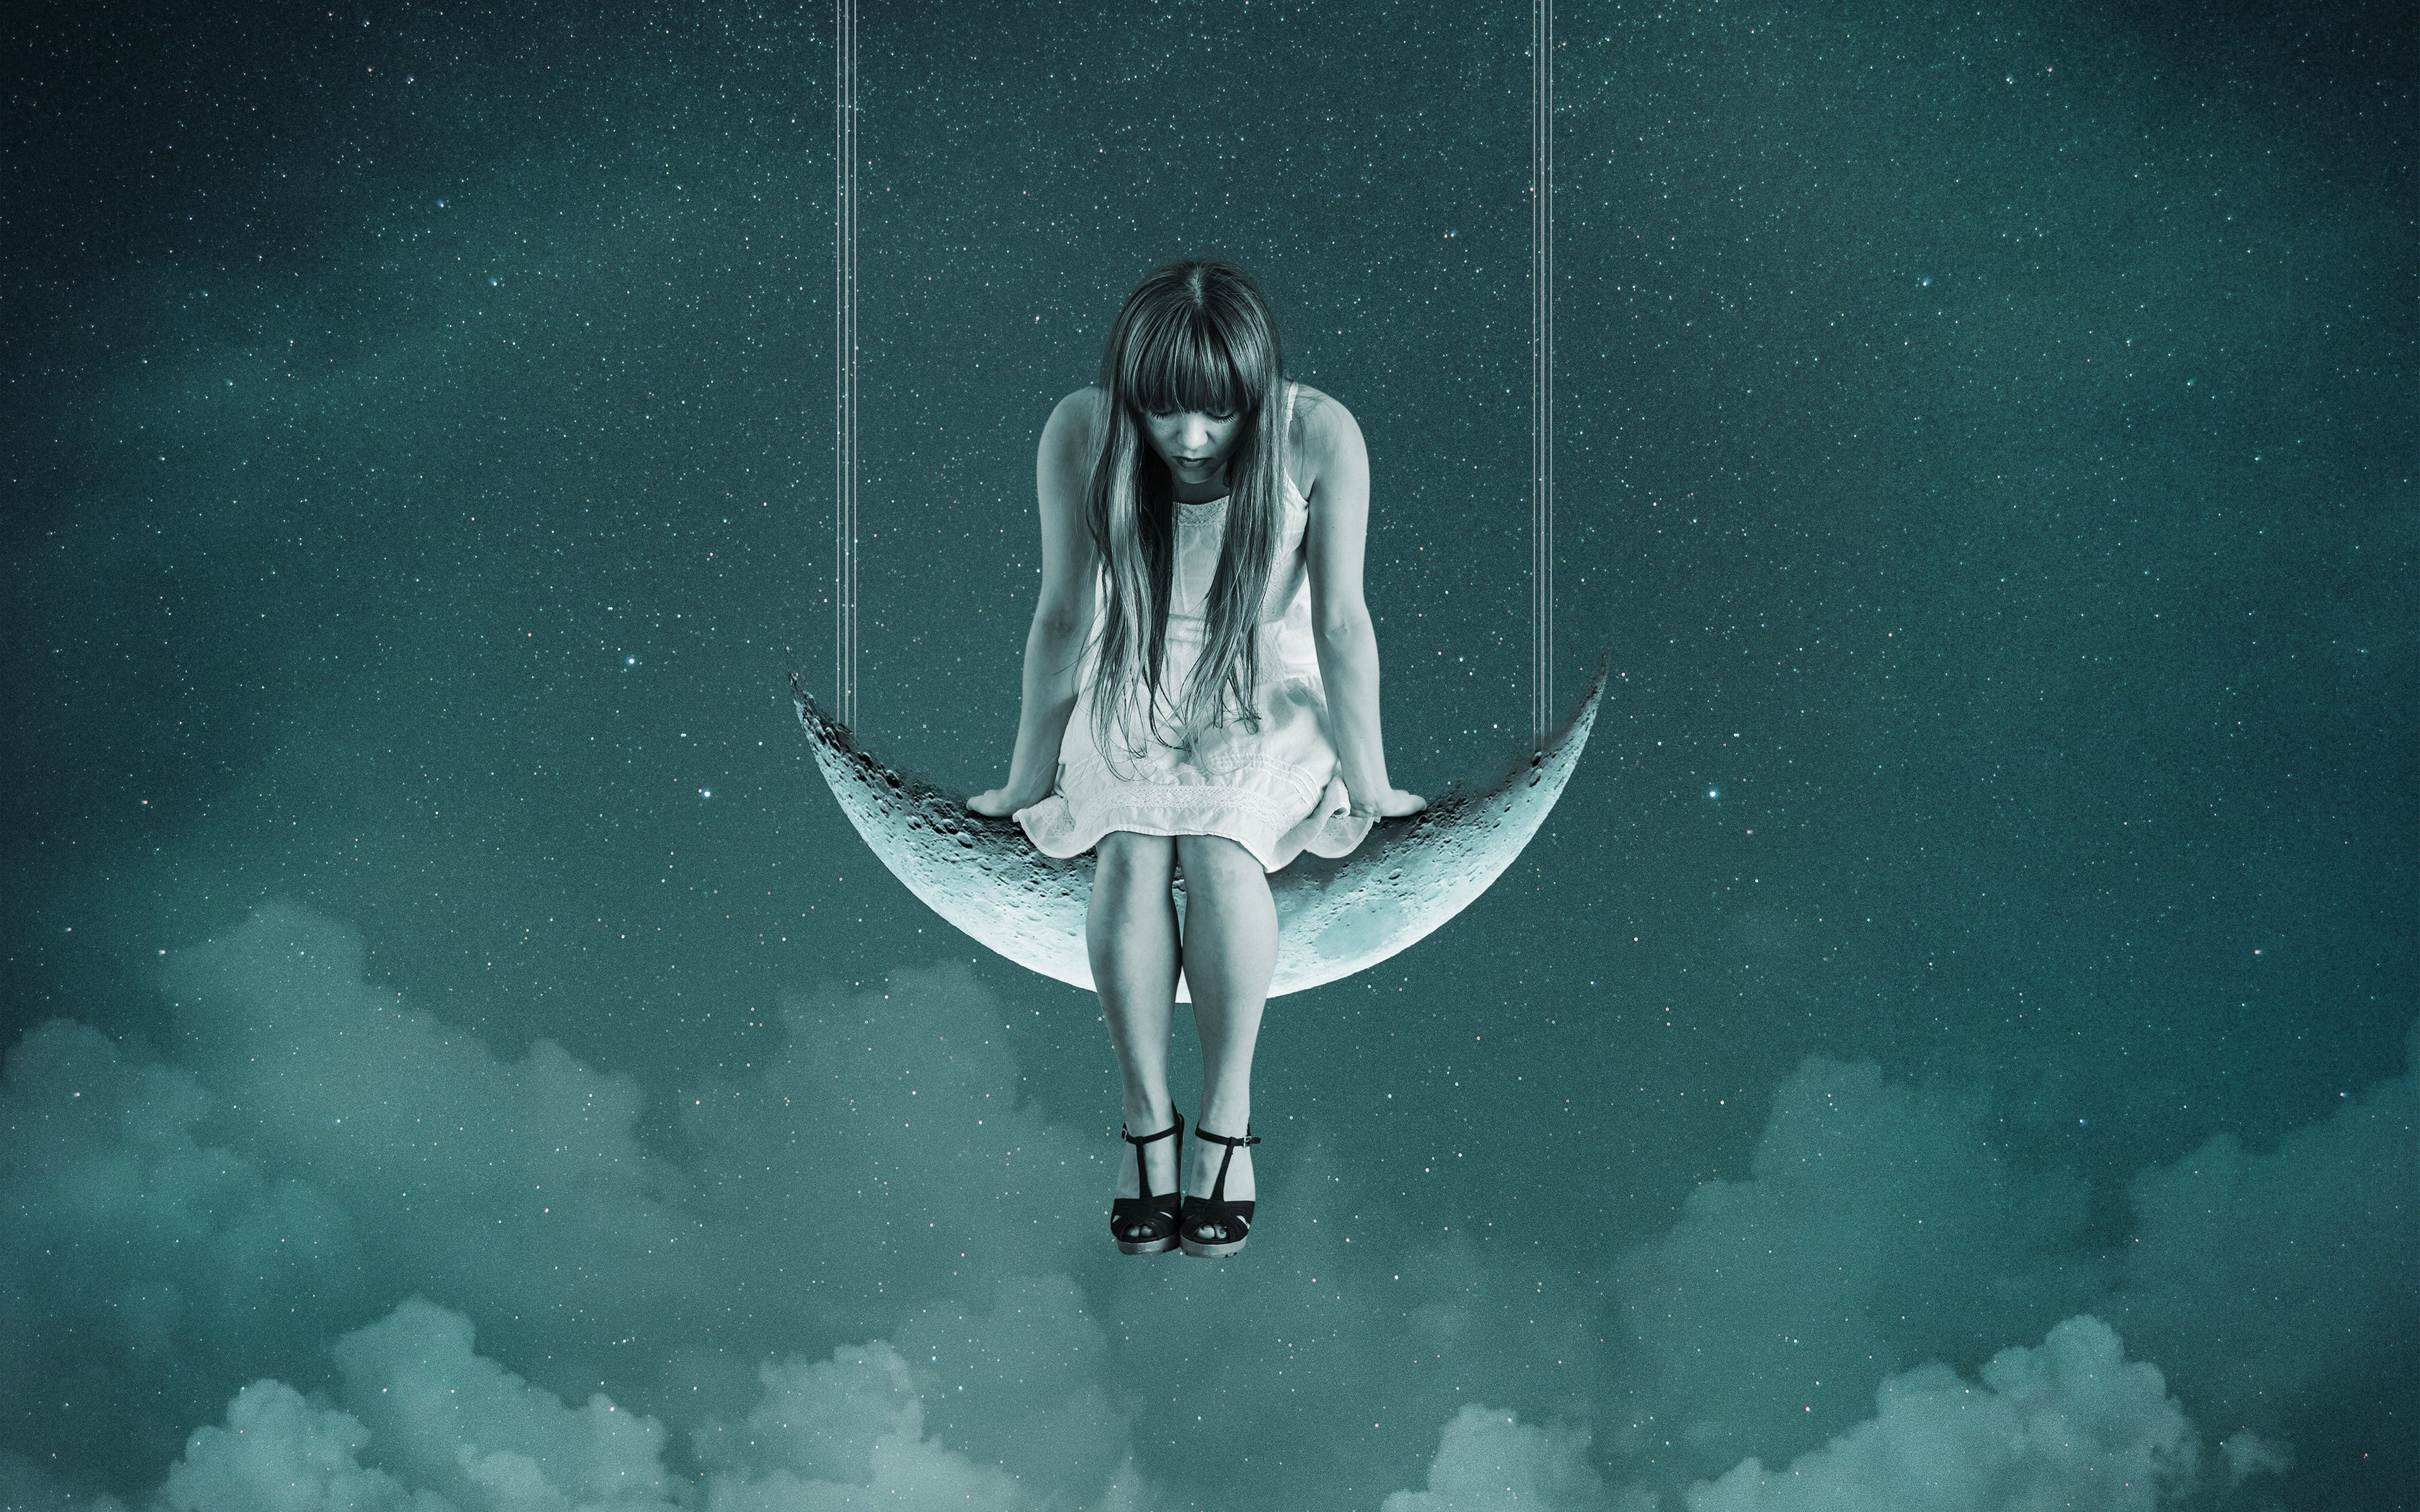 Wallpaper Girl, Moon, Sky, Swing, Photoshop - Don T Hide Your Madness , HD Wallpaper & Backgrounds